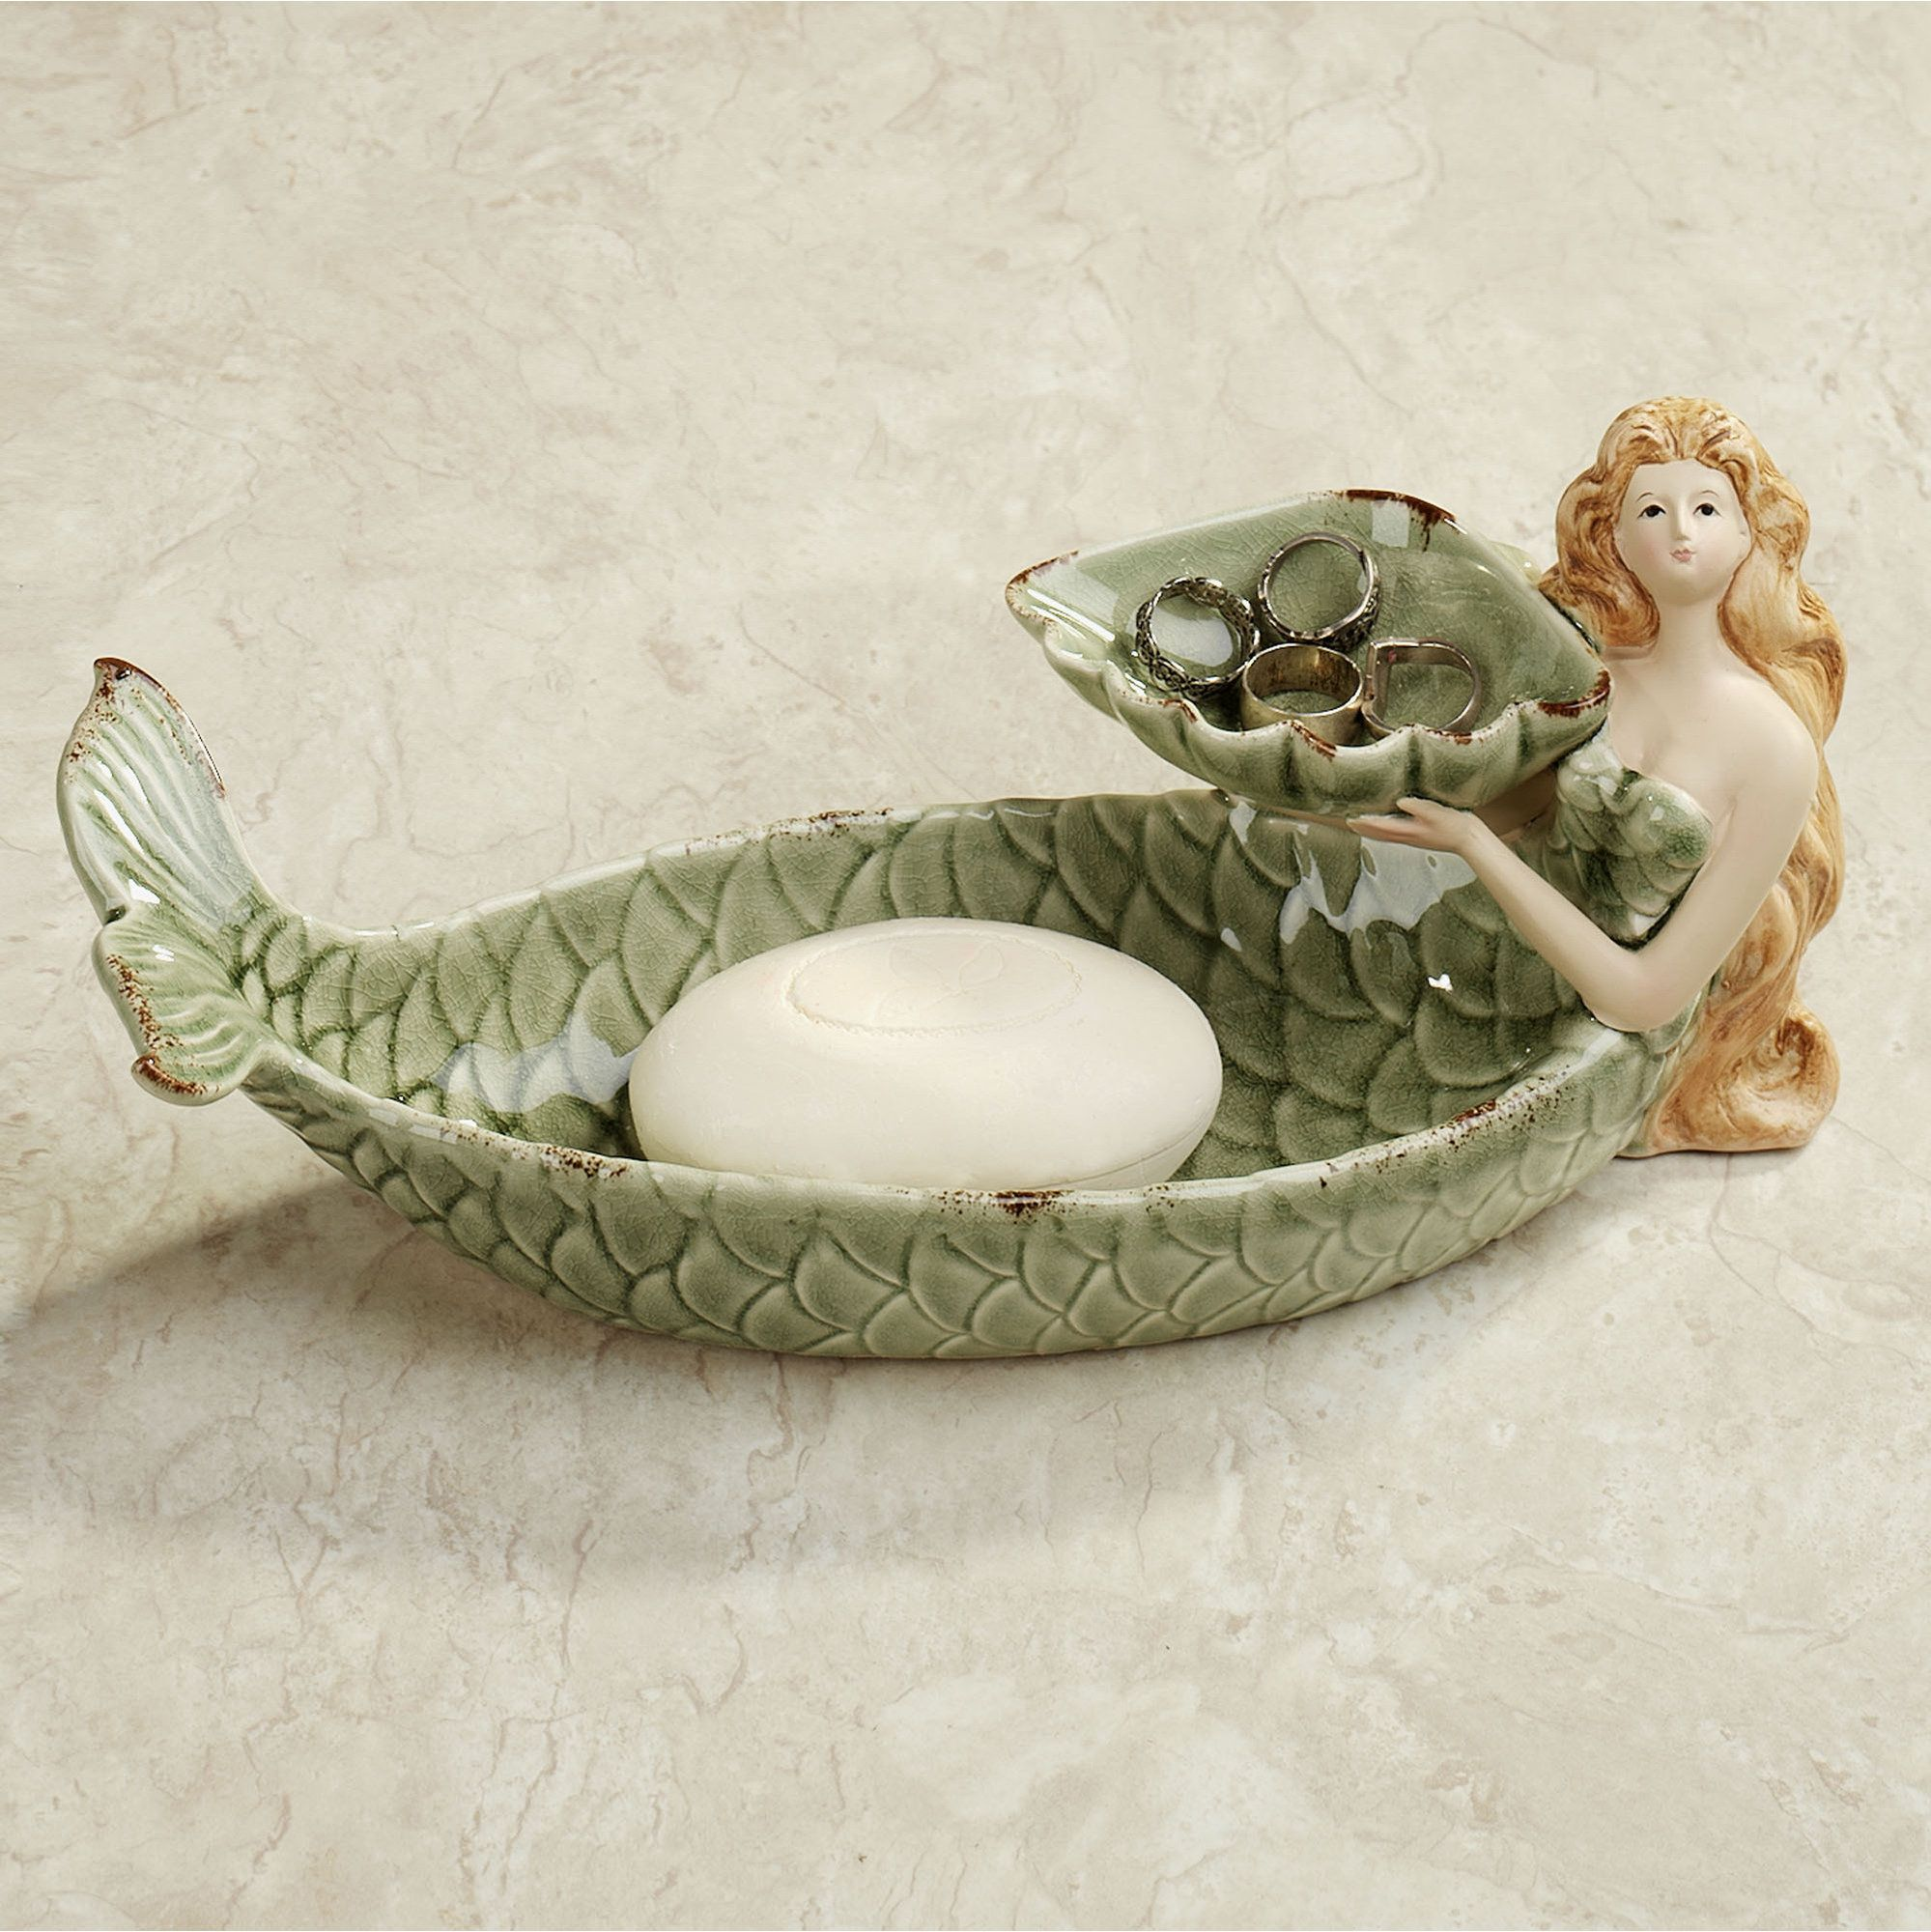 Mermaid bathroom decor - Mermaid Bathroom Decor Images